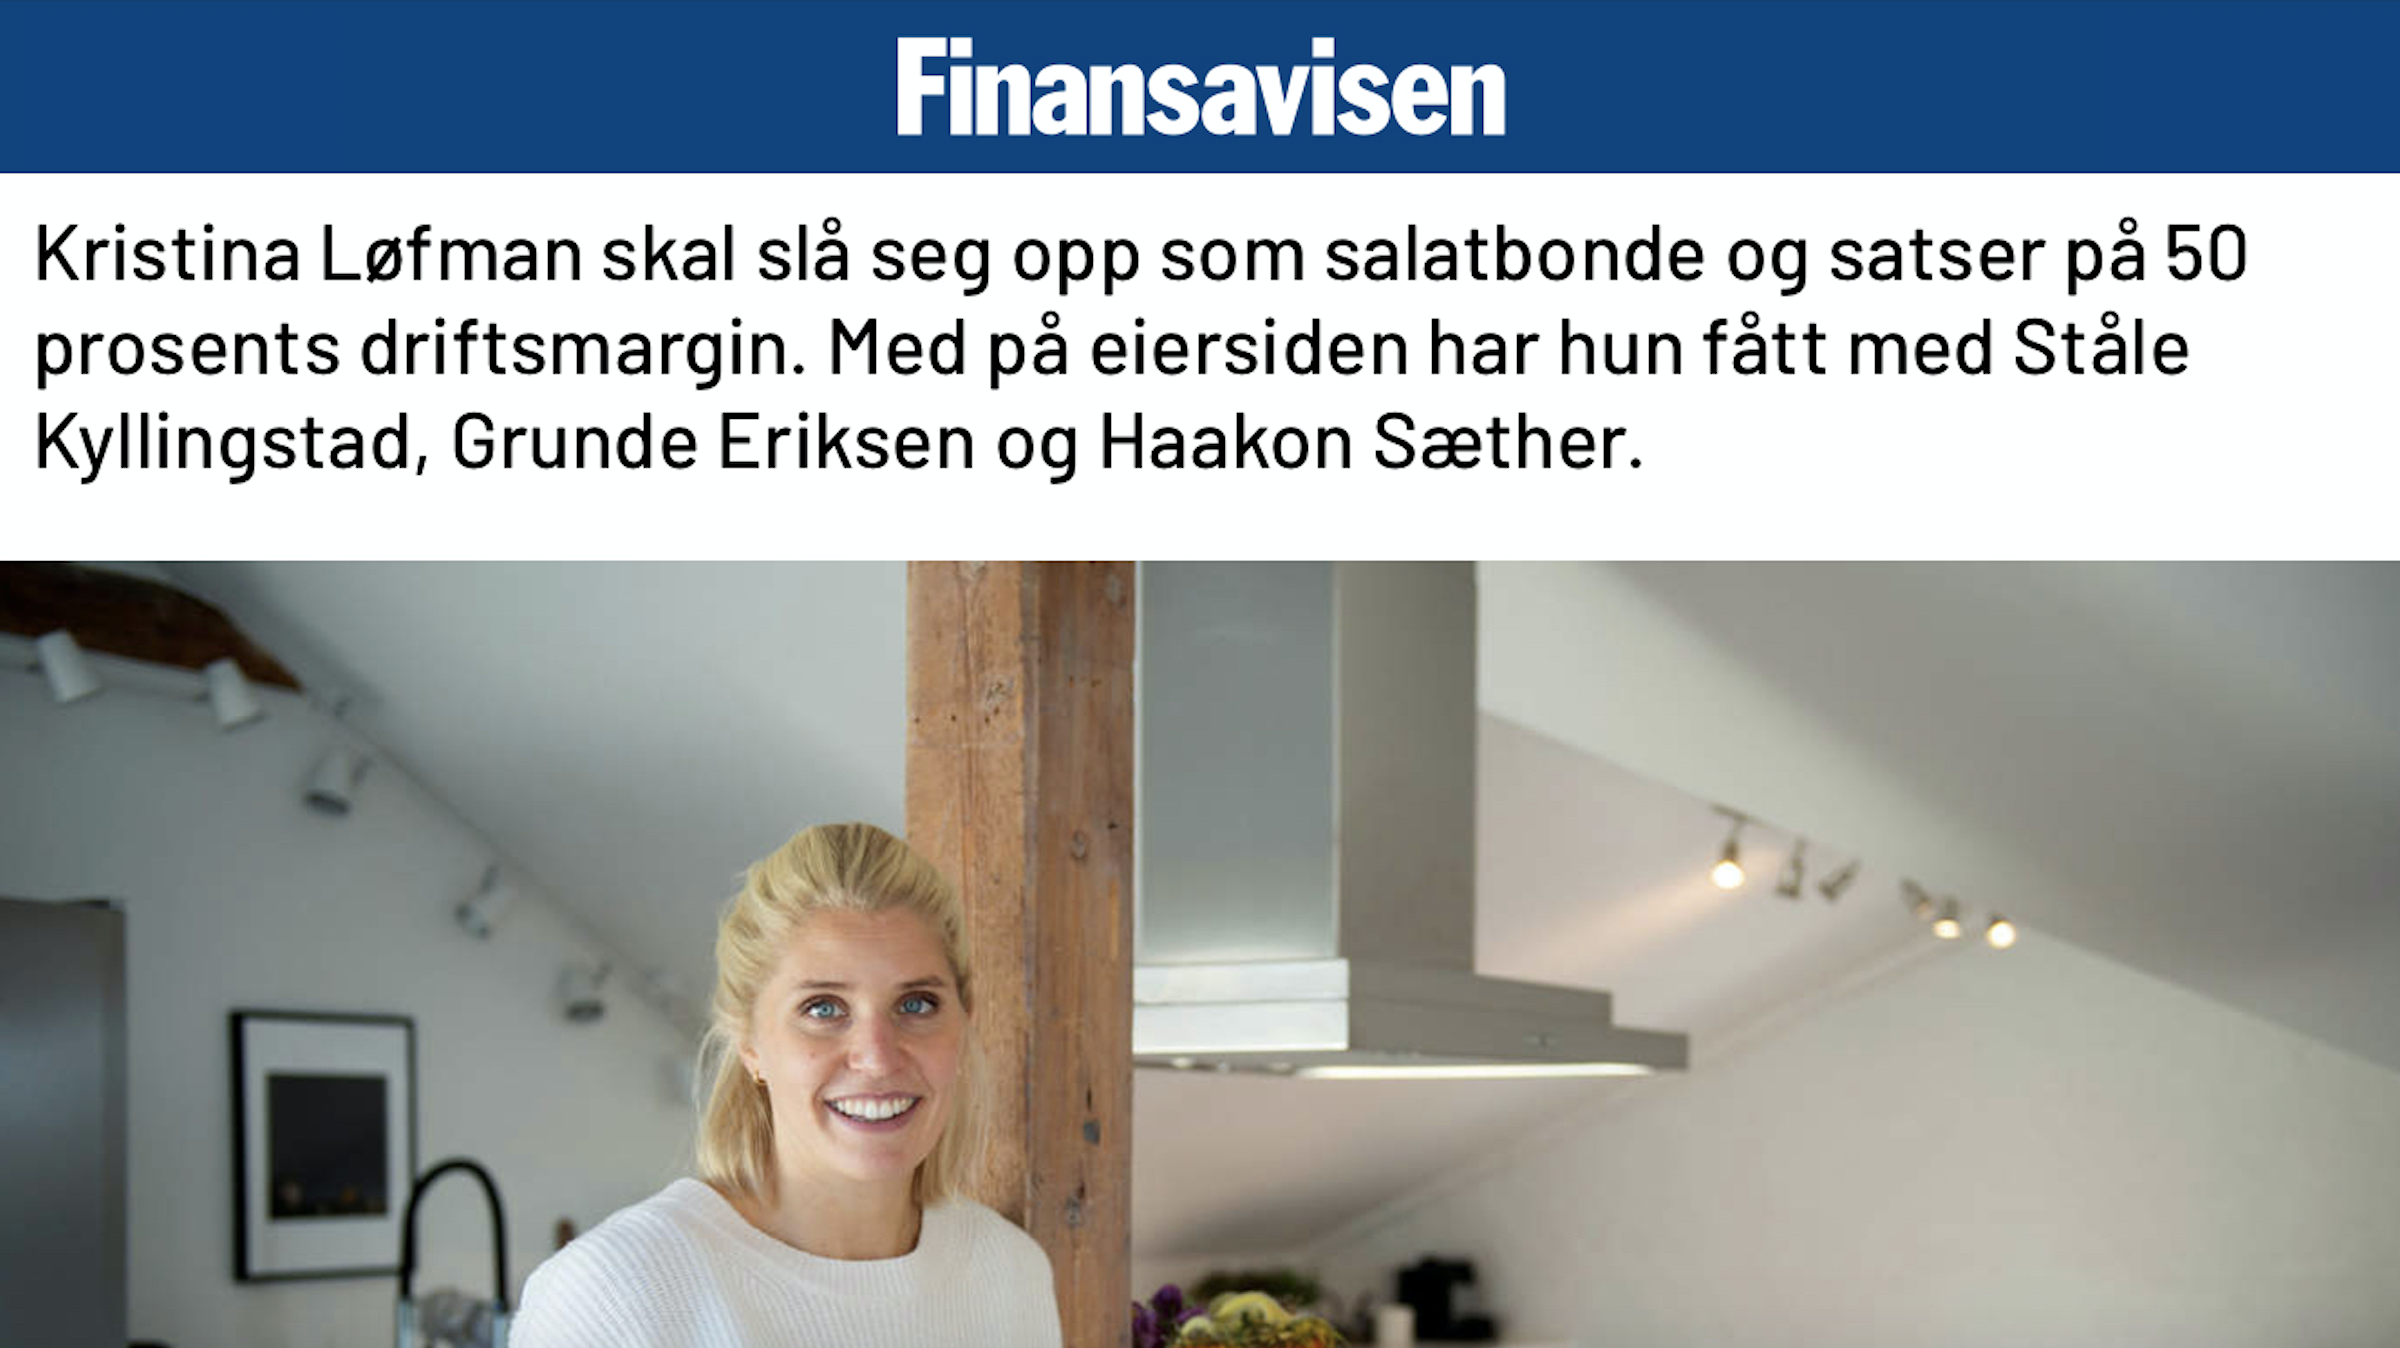 Image of Kristina Løfman from Finansavisen